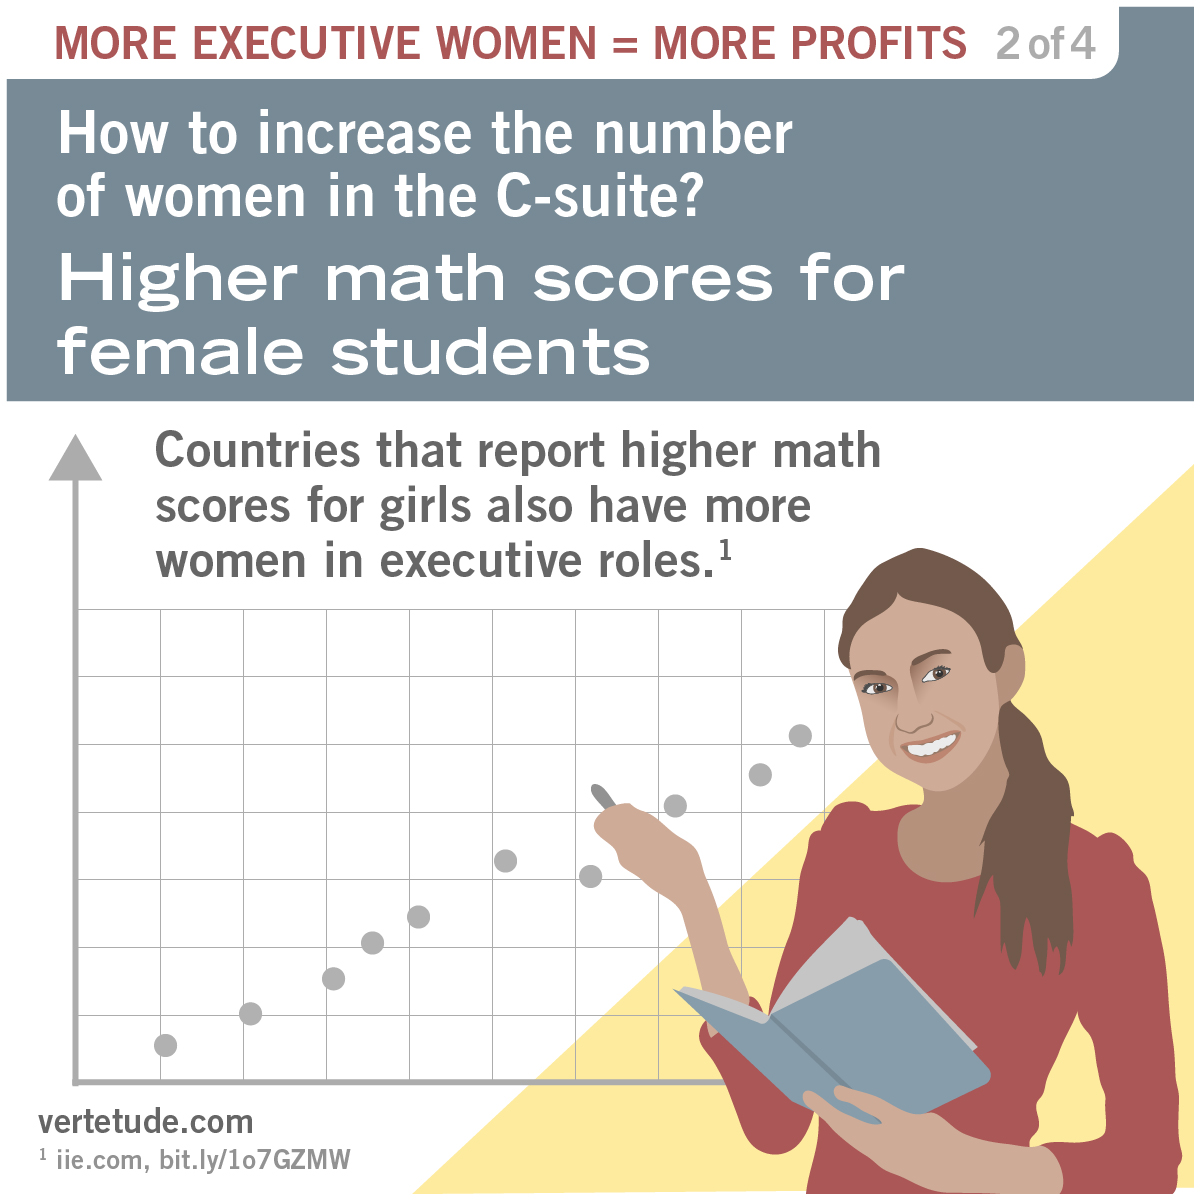 Infographic on higher math scores for female students